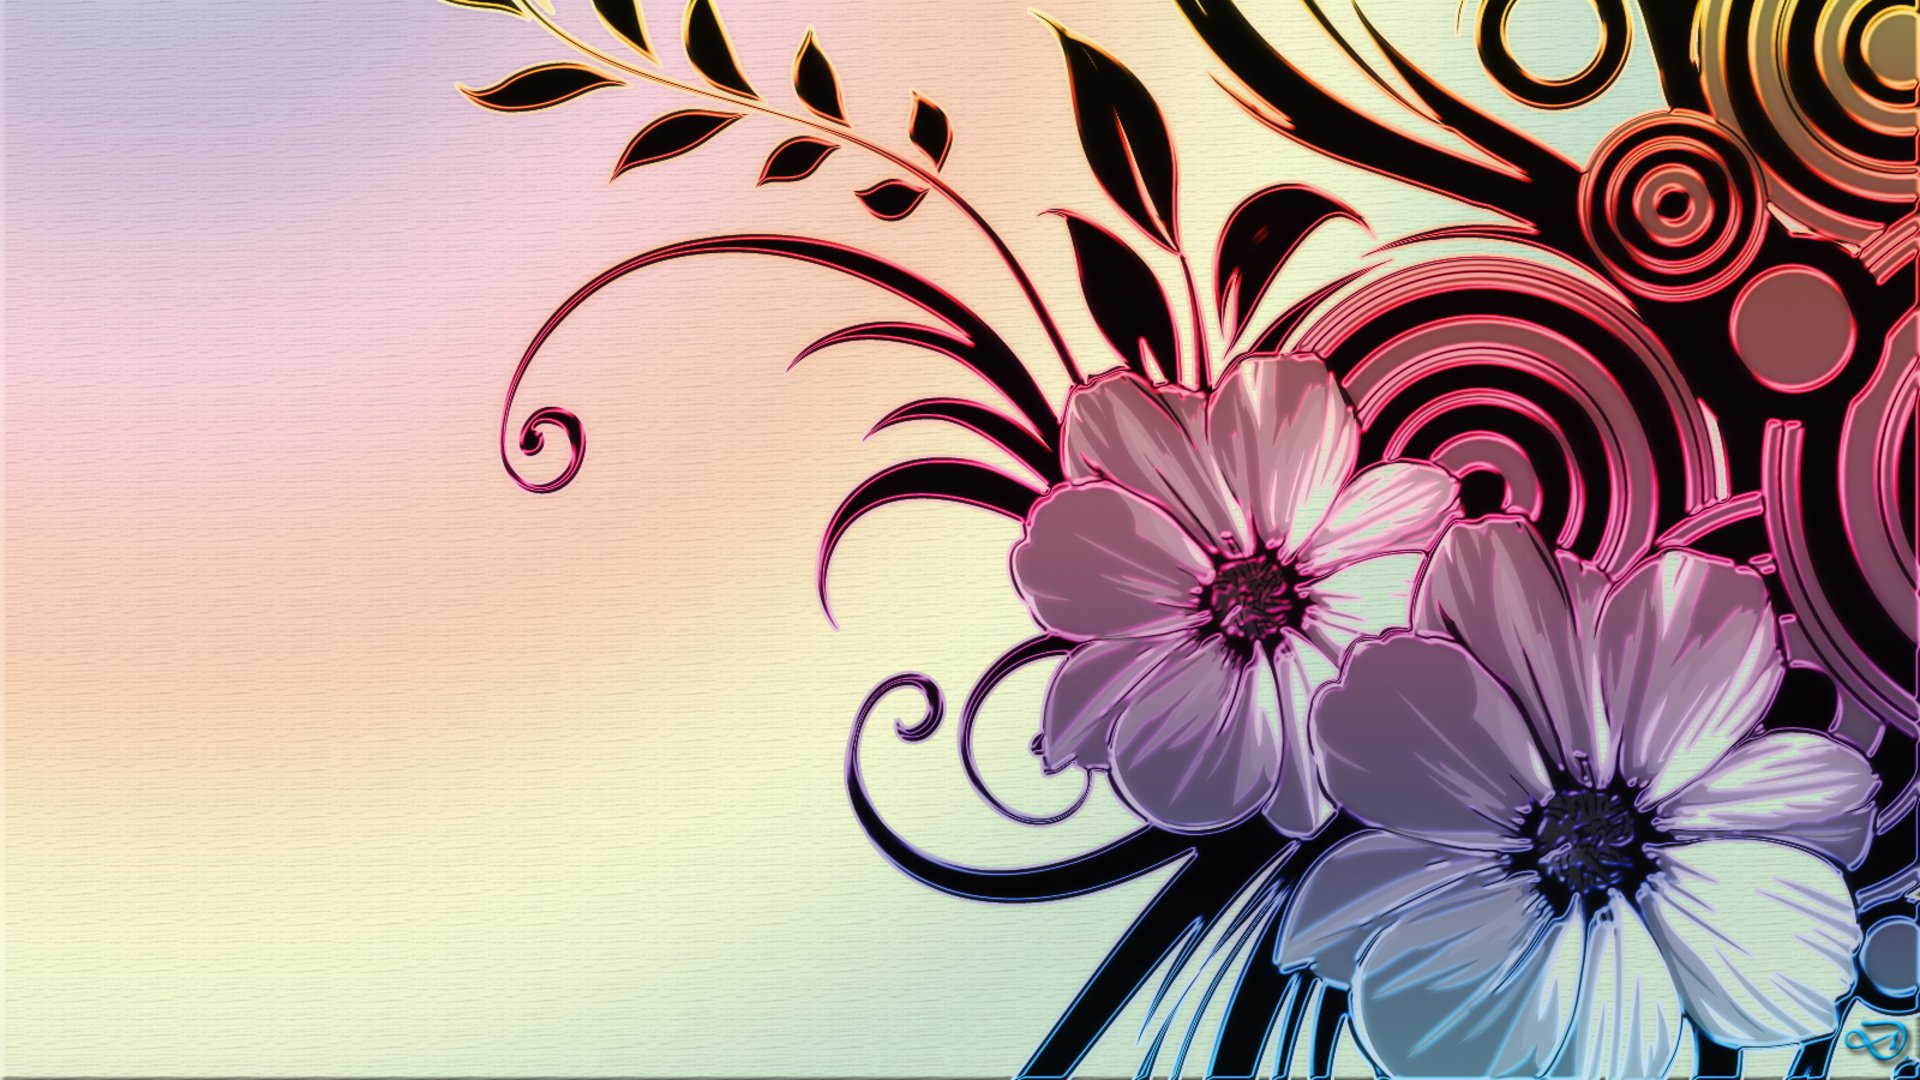 Free Download Flower Wallpaper Designs Download 3d Hd Colour Design 1920x1080 For Your Desktop Mobile Tablet Explore 50 How To Design Wallpaper Interior Wallpaper Designs Make Your Own Wallpaper